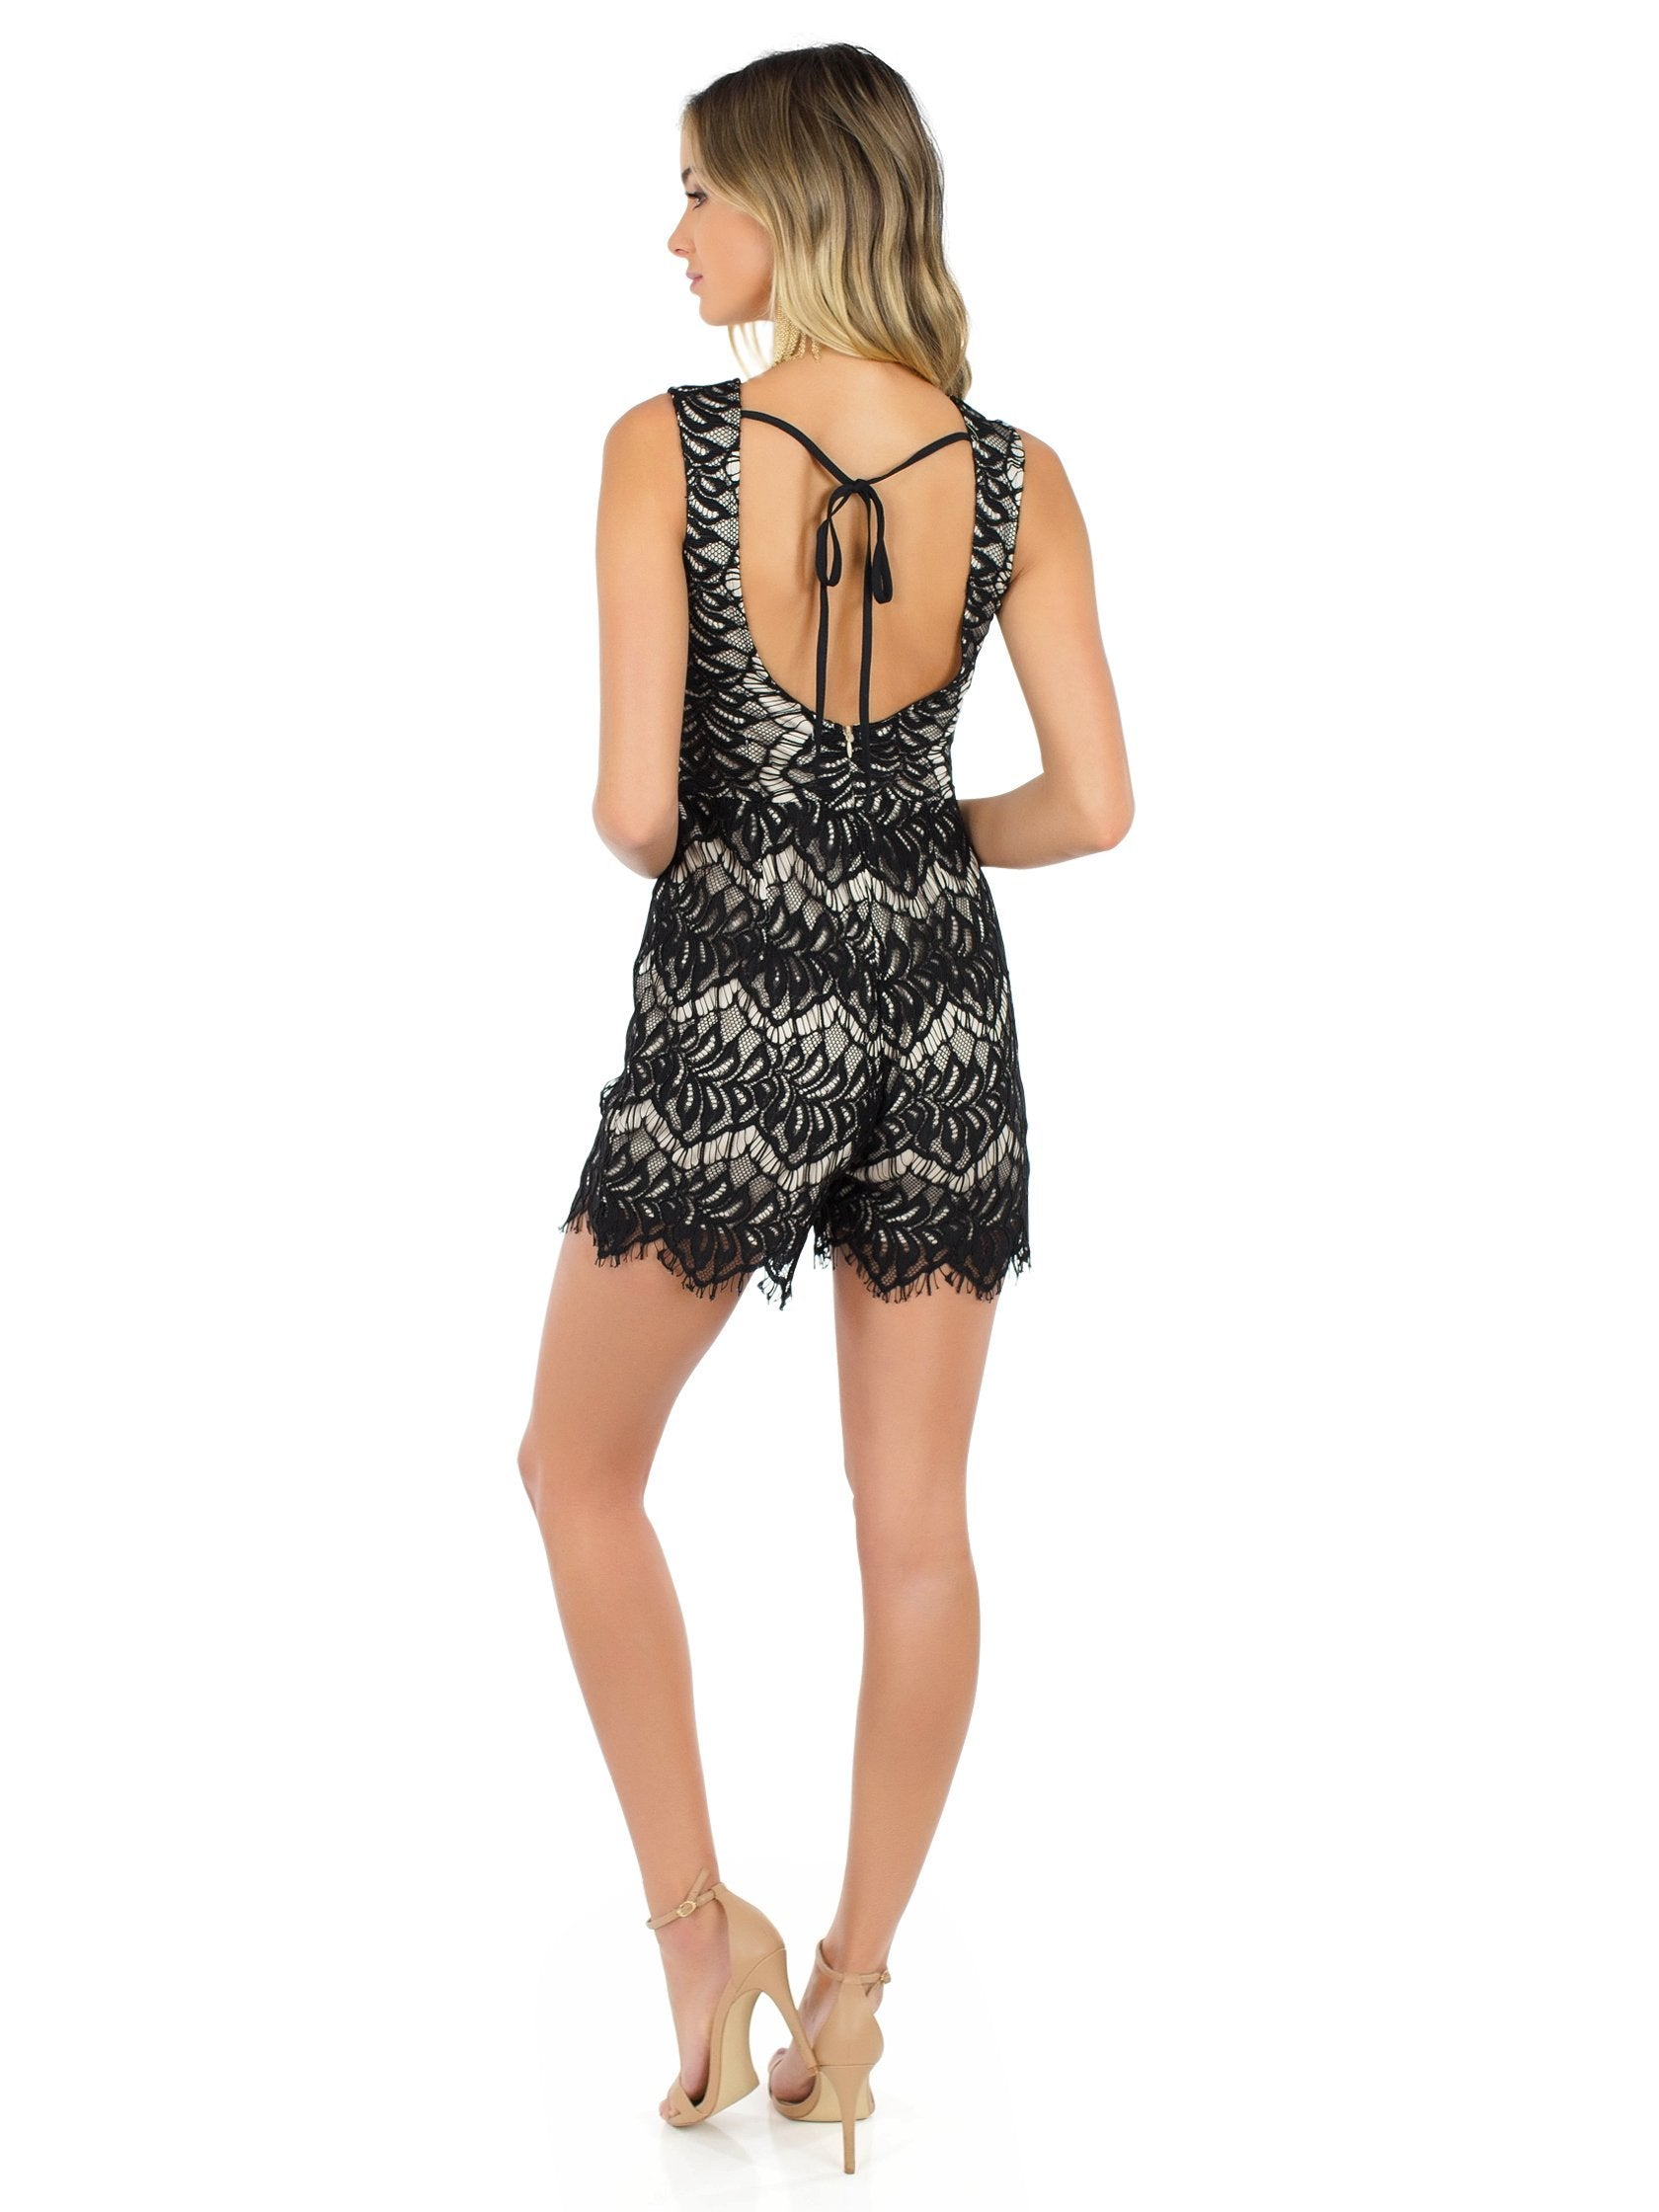 Women wearing a romper rental from WYLDR called Get Up Playsuit